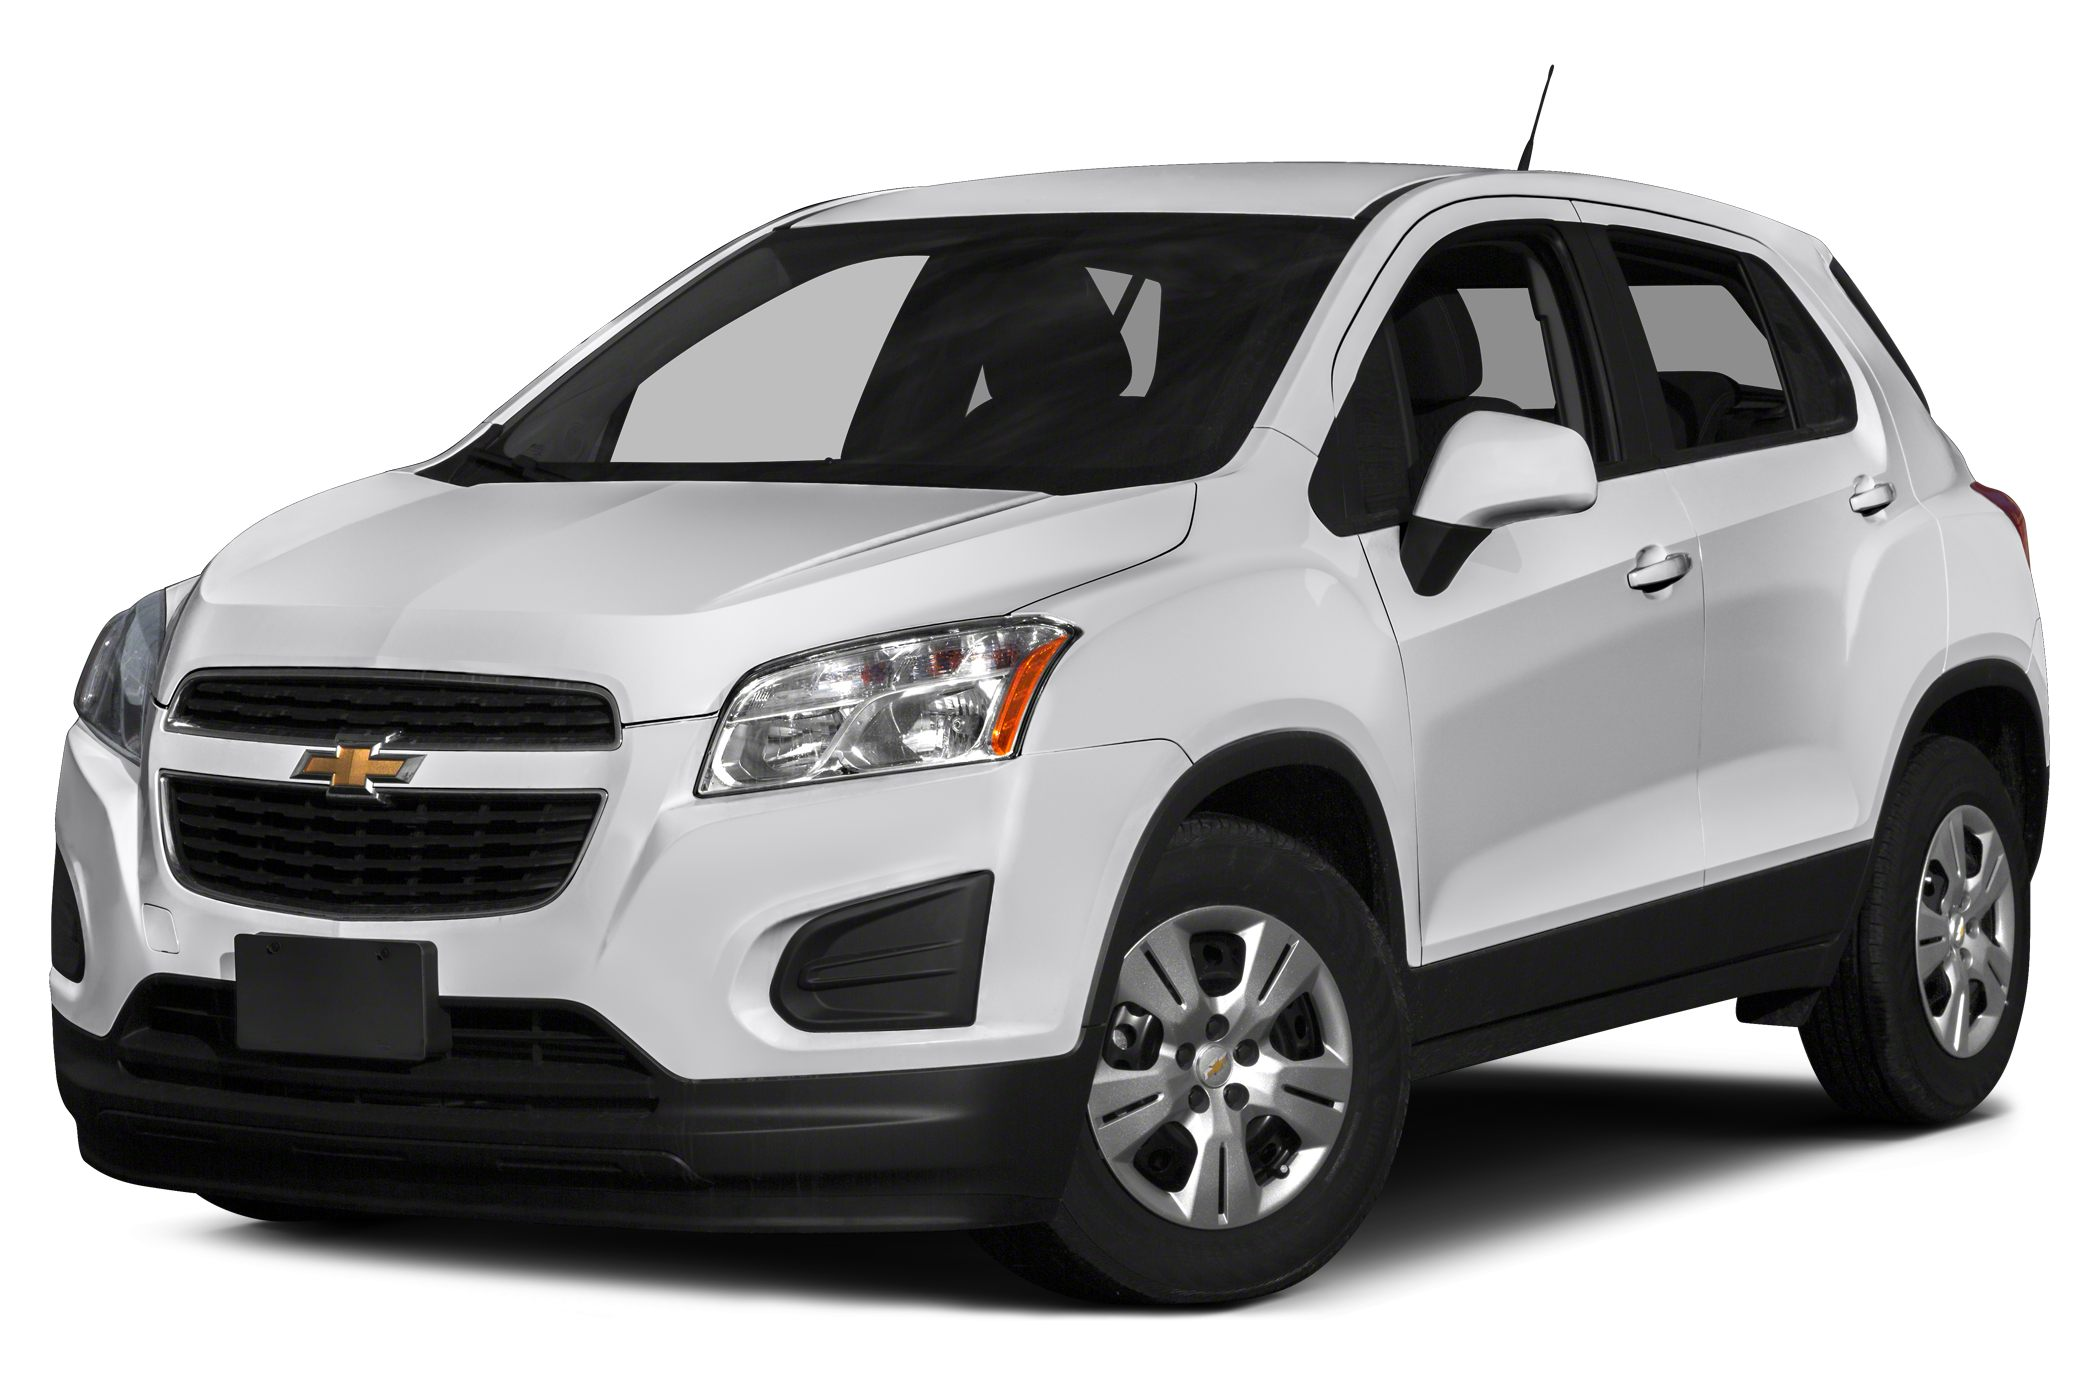 2017 chevrolet trax gets a friendlier face more tech autoblog. Black Bedroom Furniture Sets. Home Design Ideas